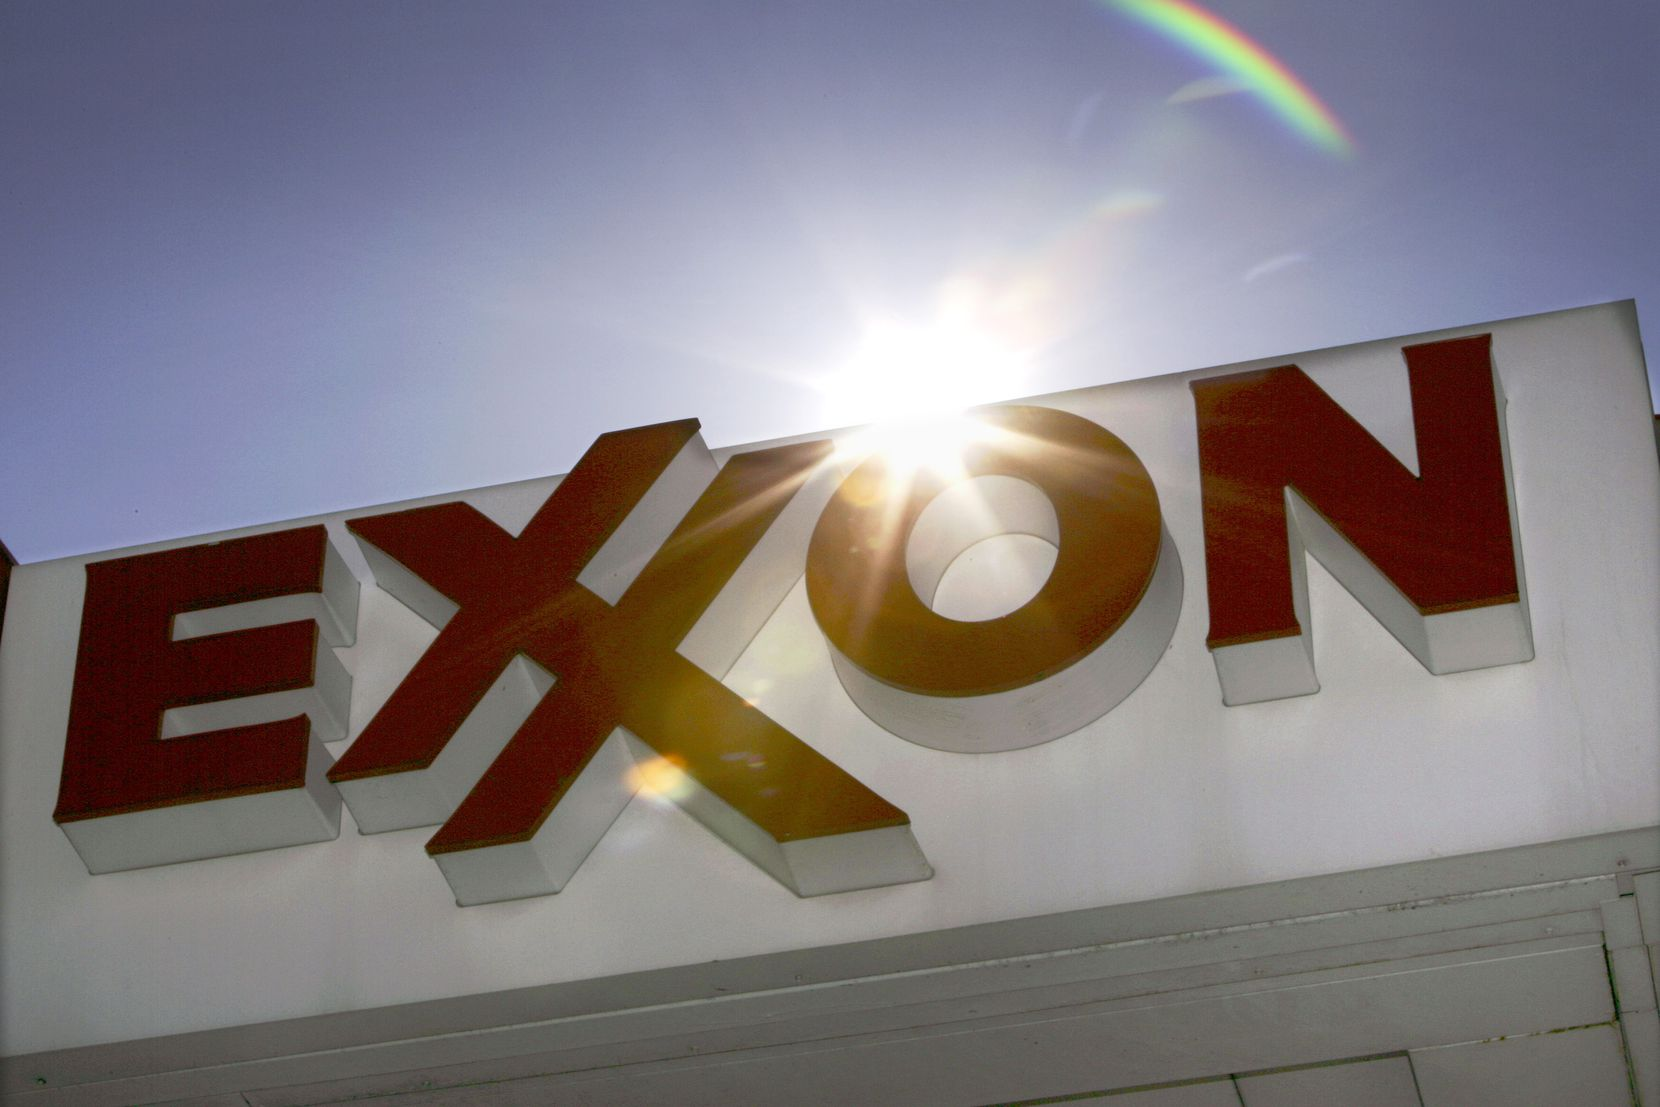 Exxon recorded its first quarterly loss in 32 years in the first three months of 2020.